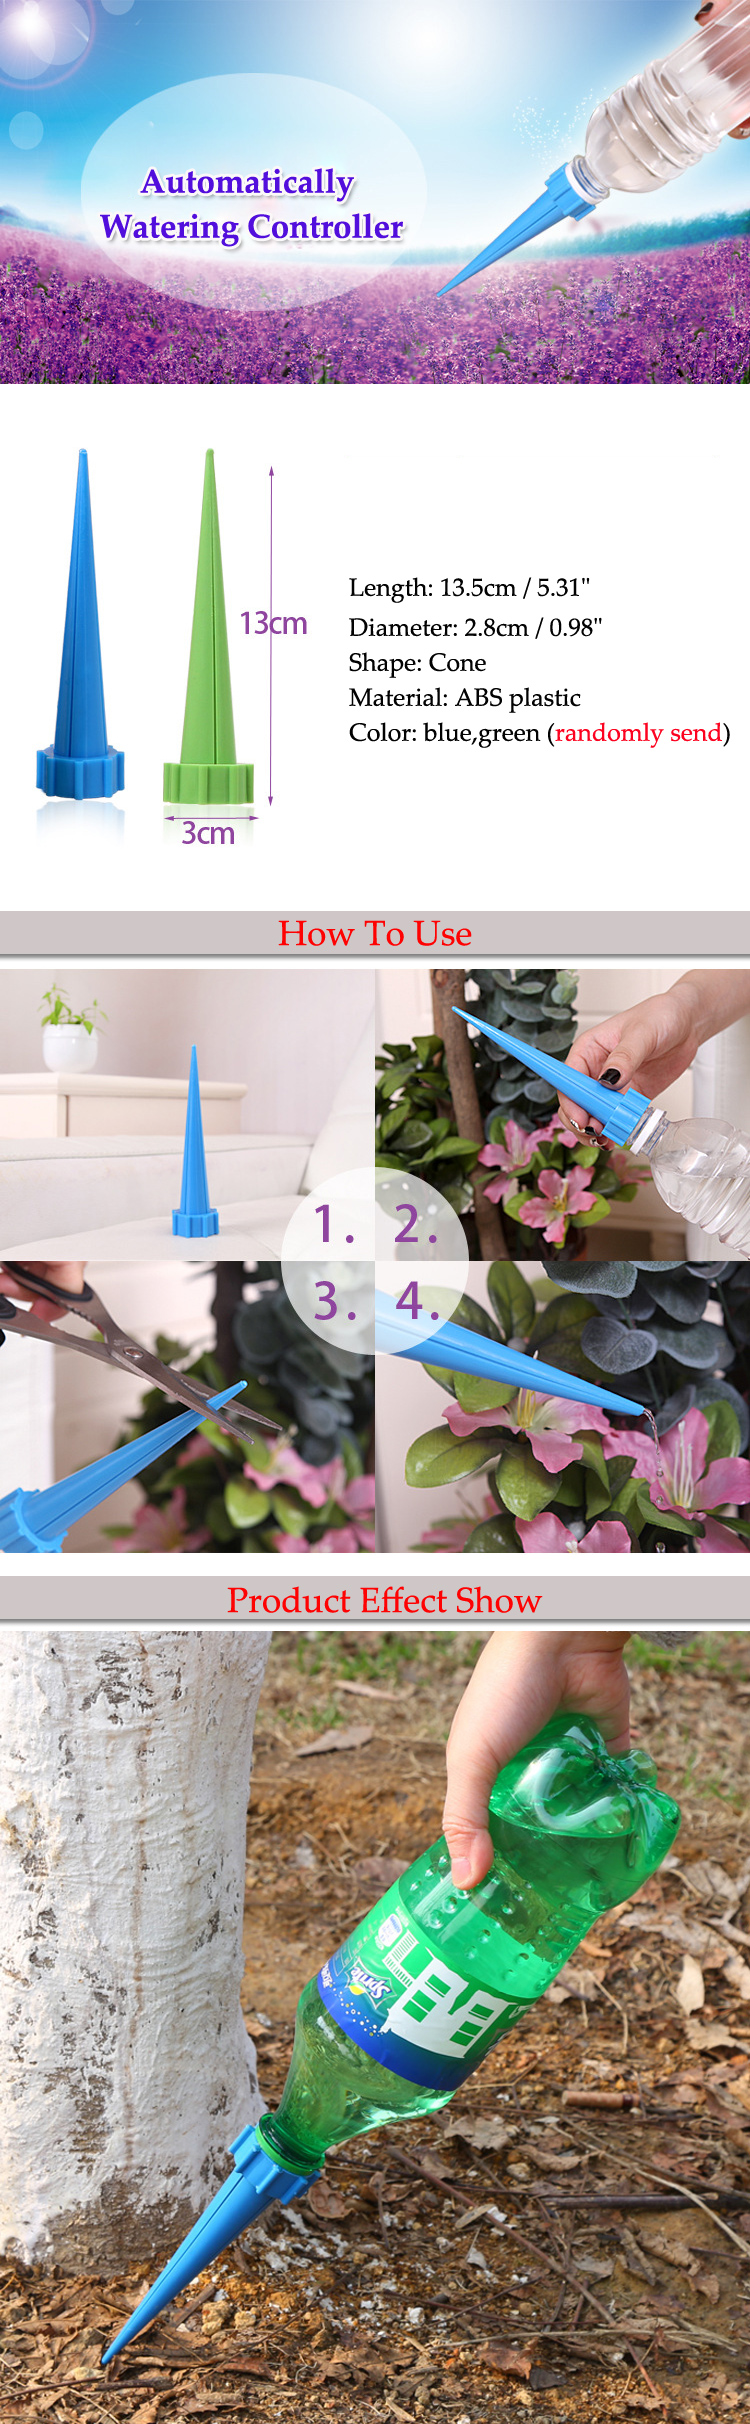 garden automatically watering kits